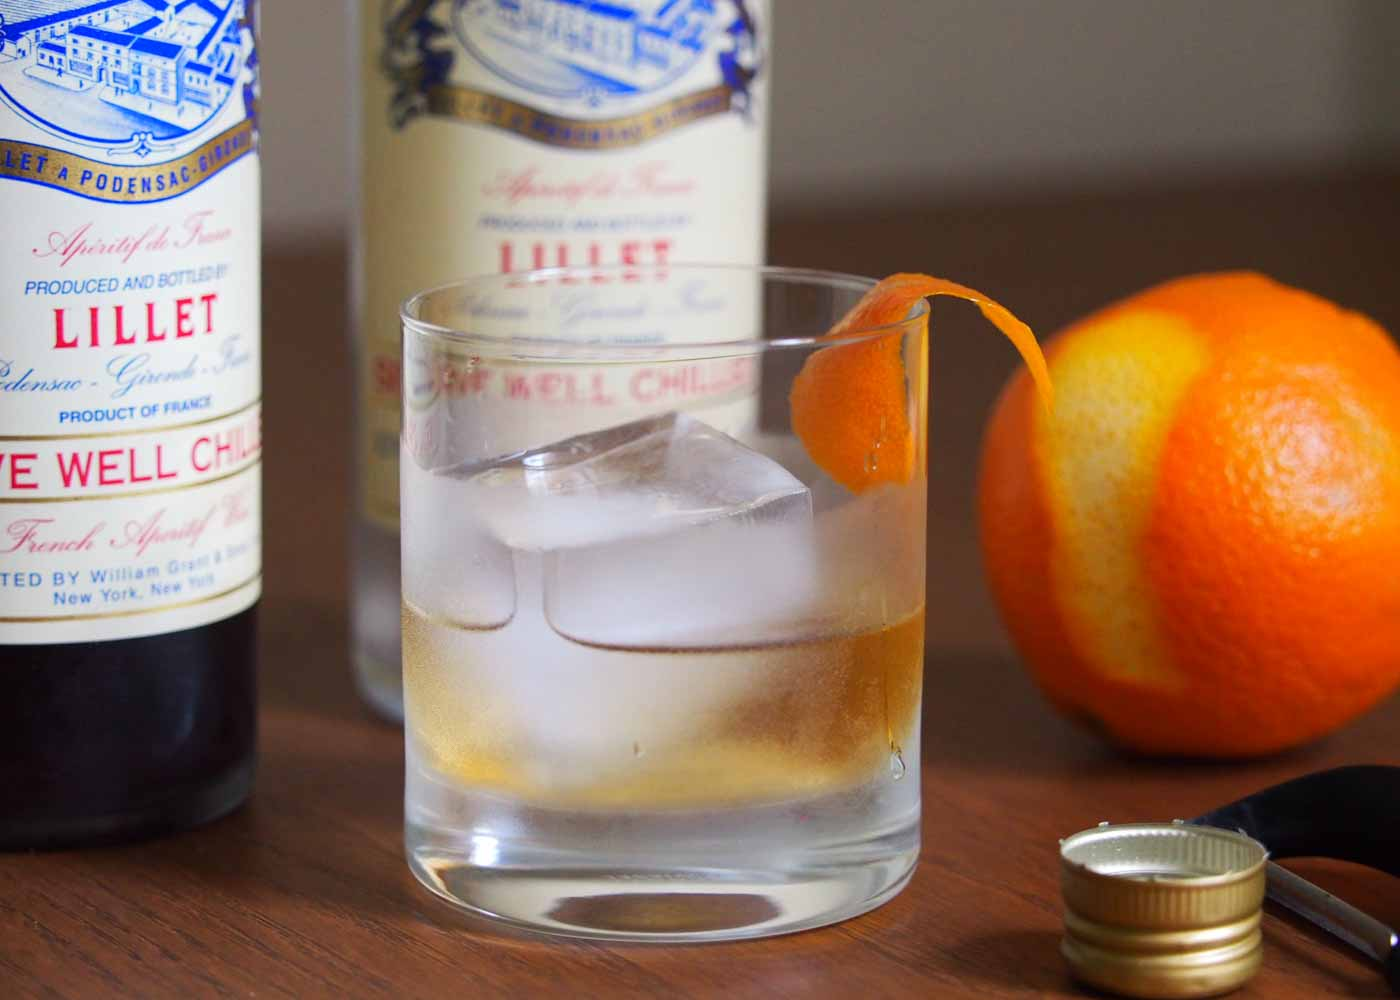 Lillet in a double old fashioned crystal glass by Schott Zwiesel.